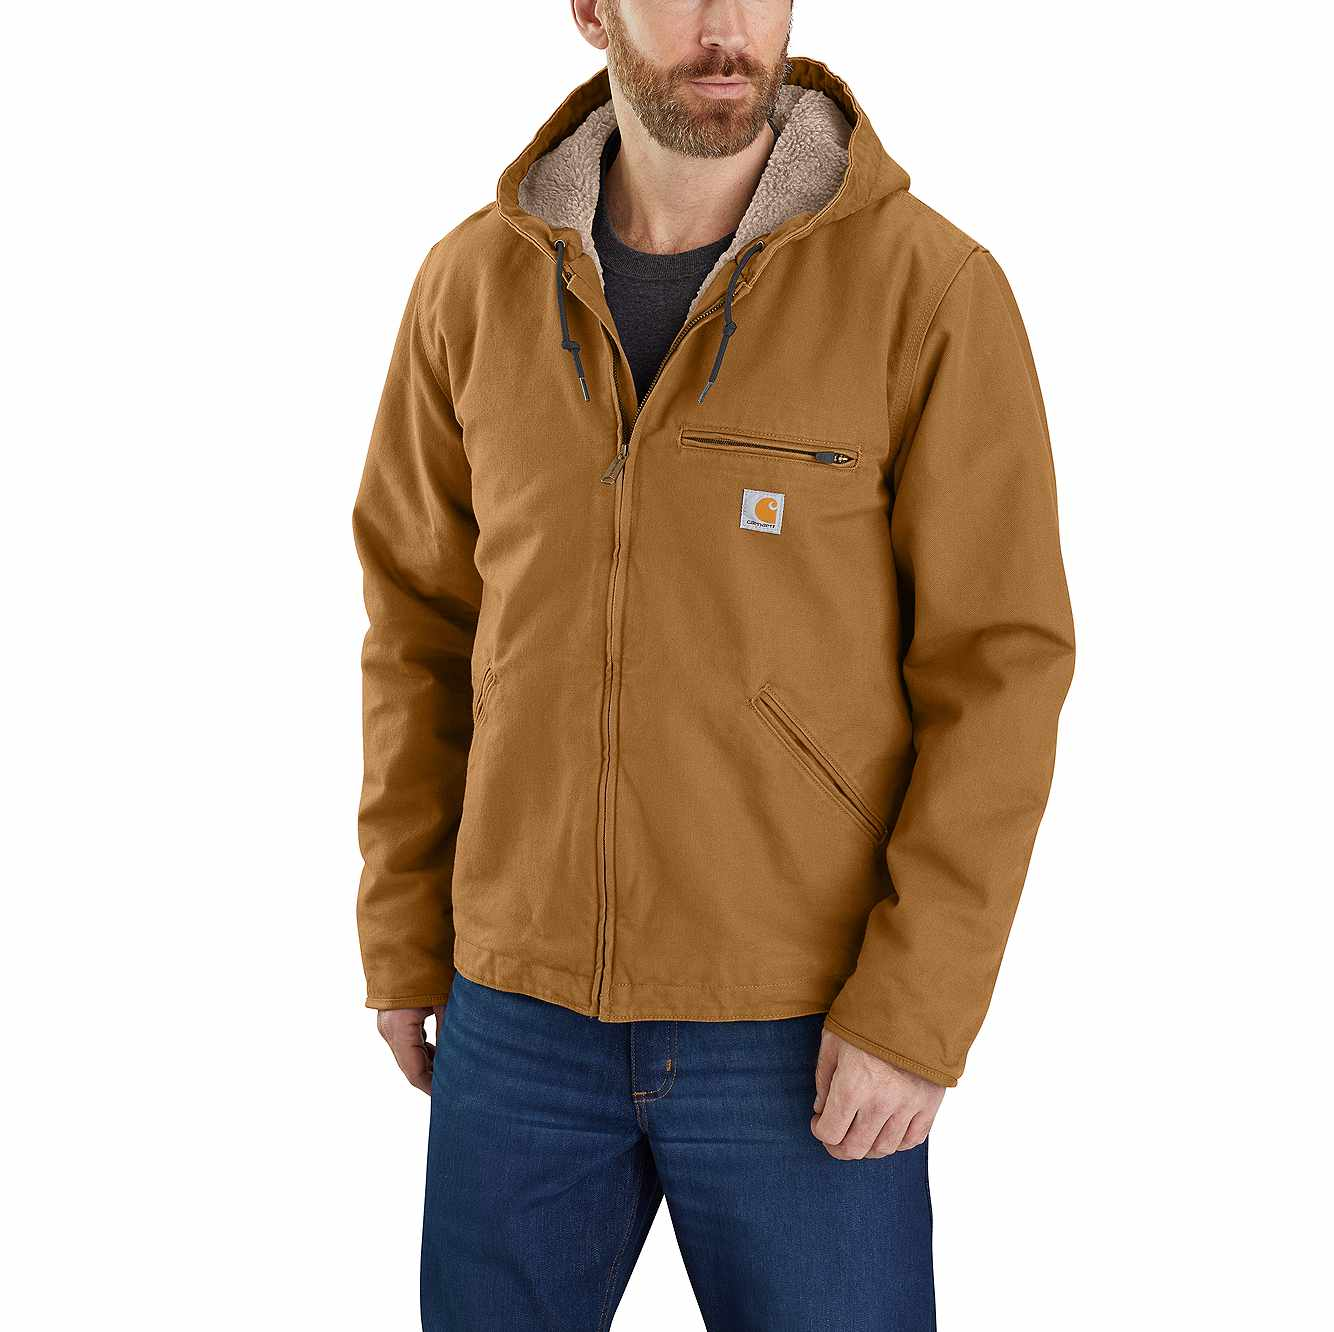 Picture of Carhartt® Washed Duck Sherpa Lined Jacket in Carhartt Brown